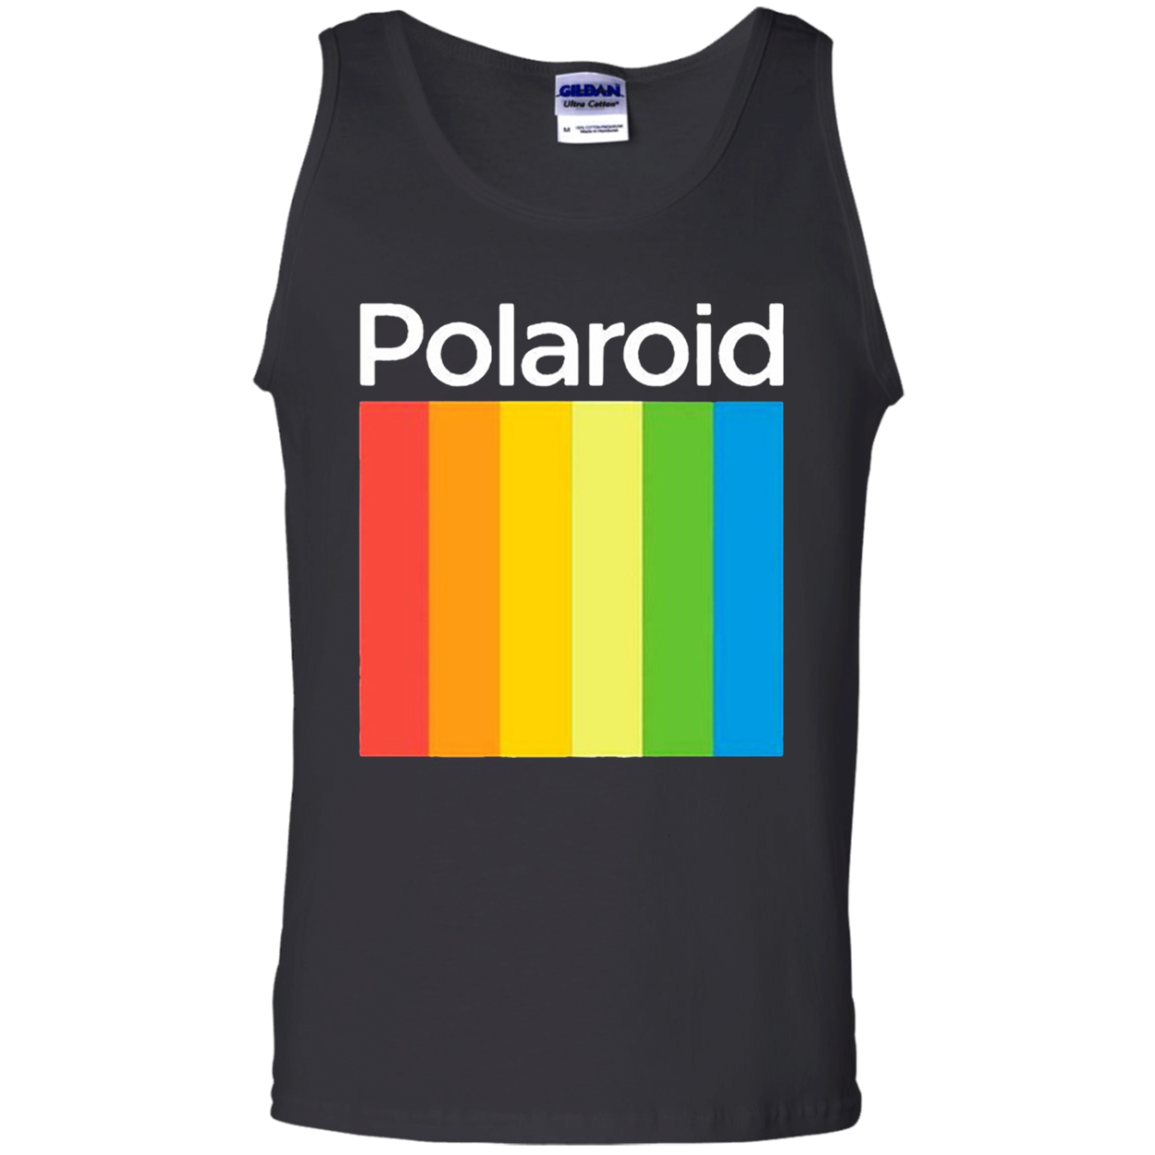 Polaroid Tank Top